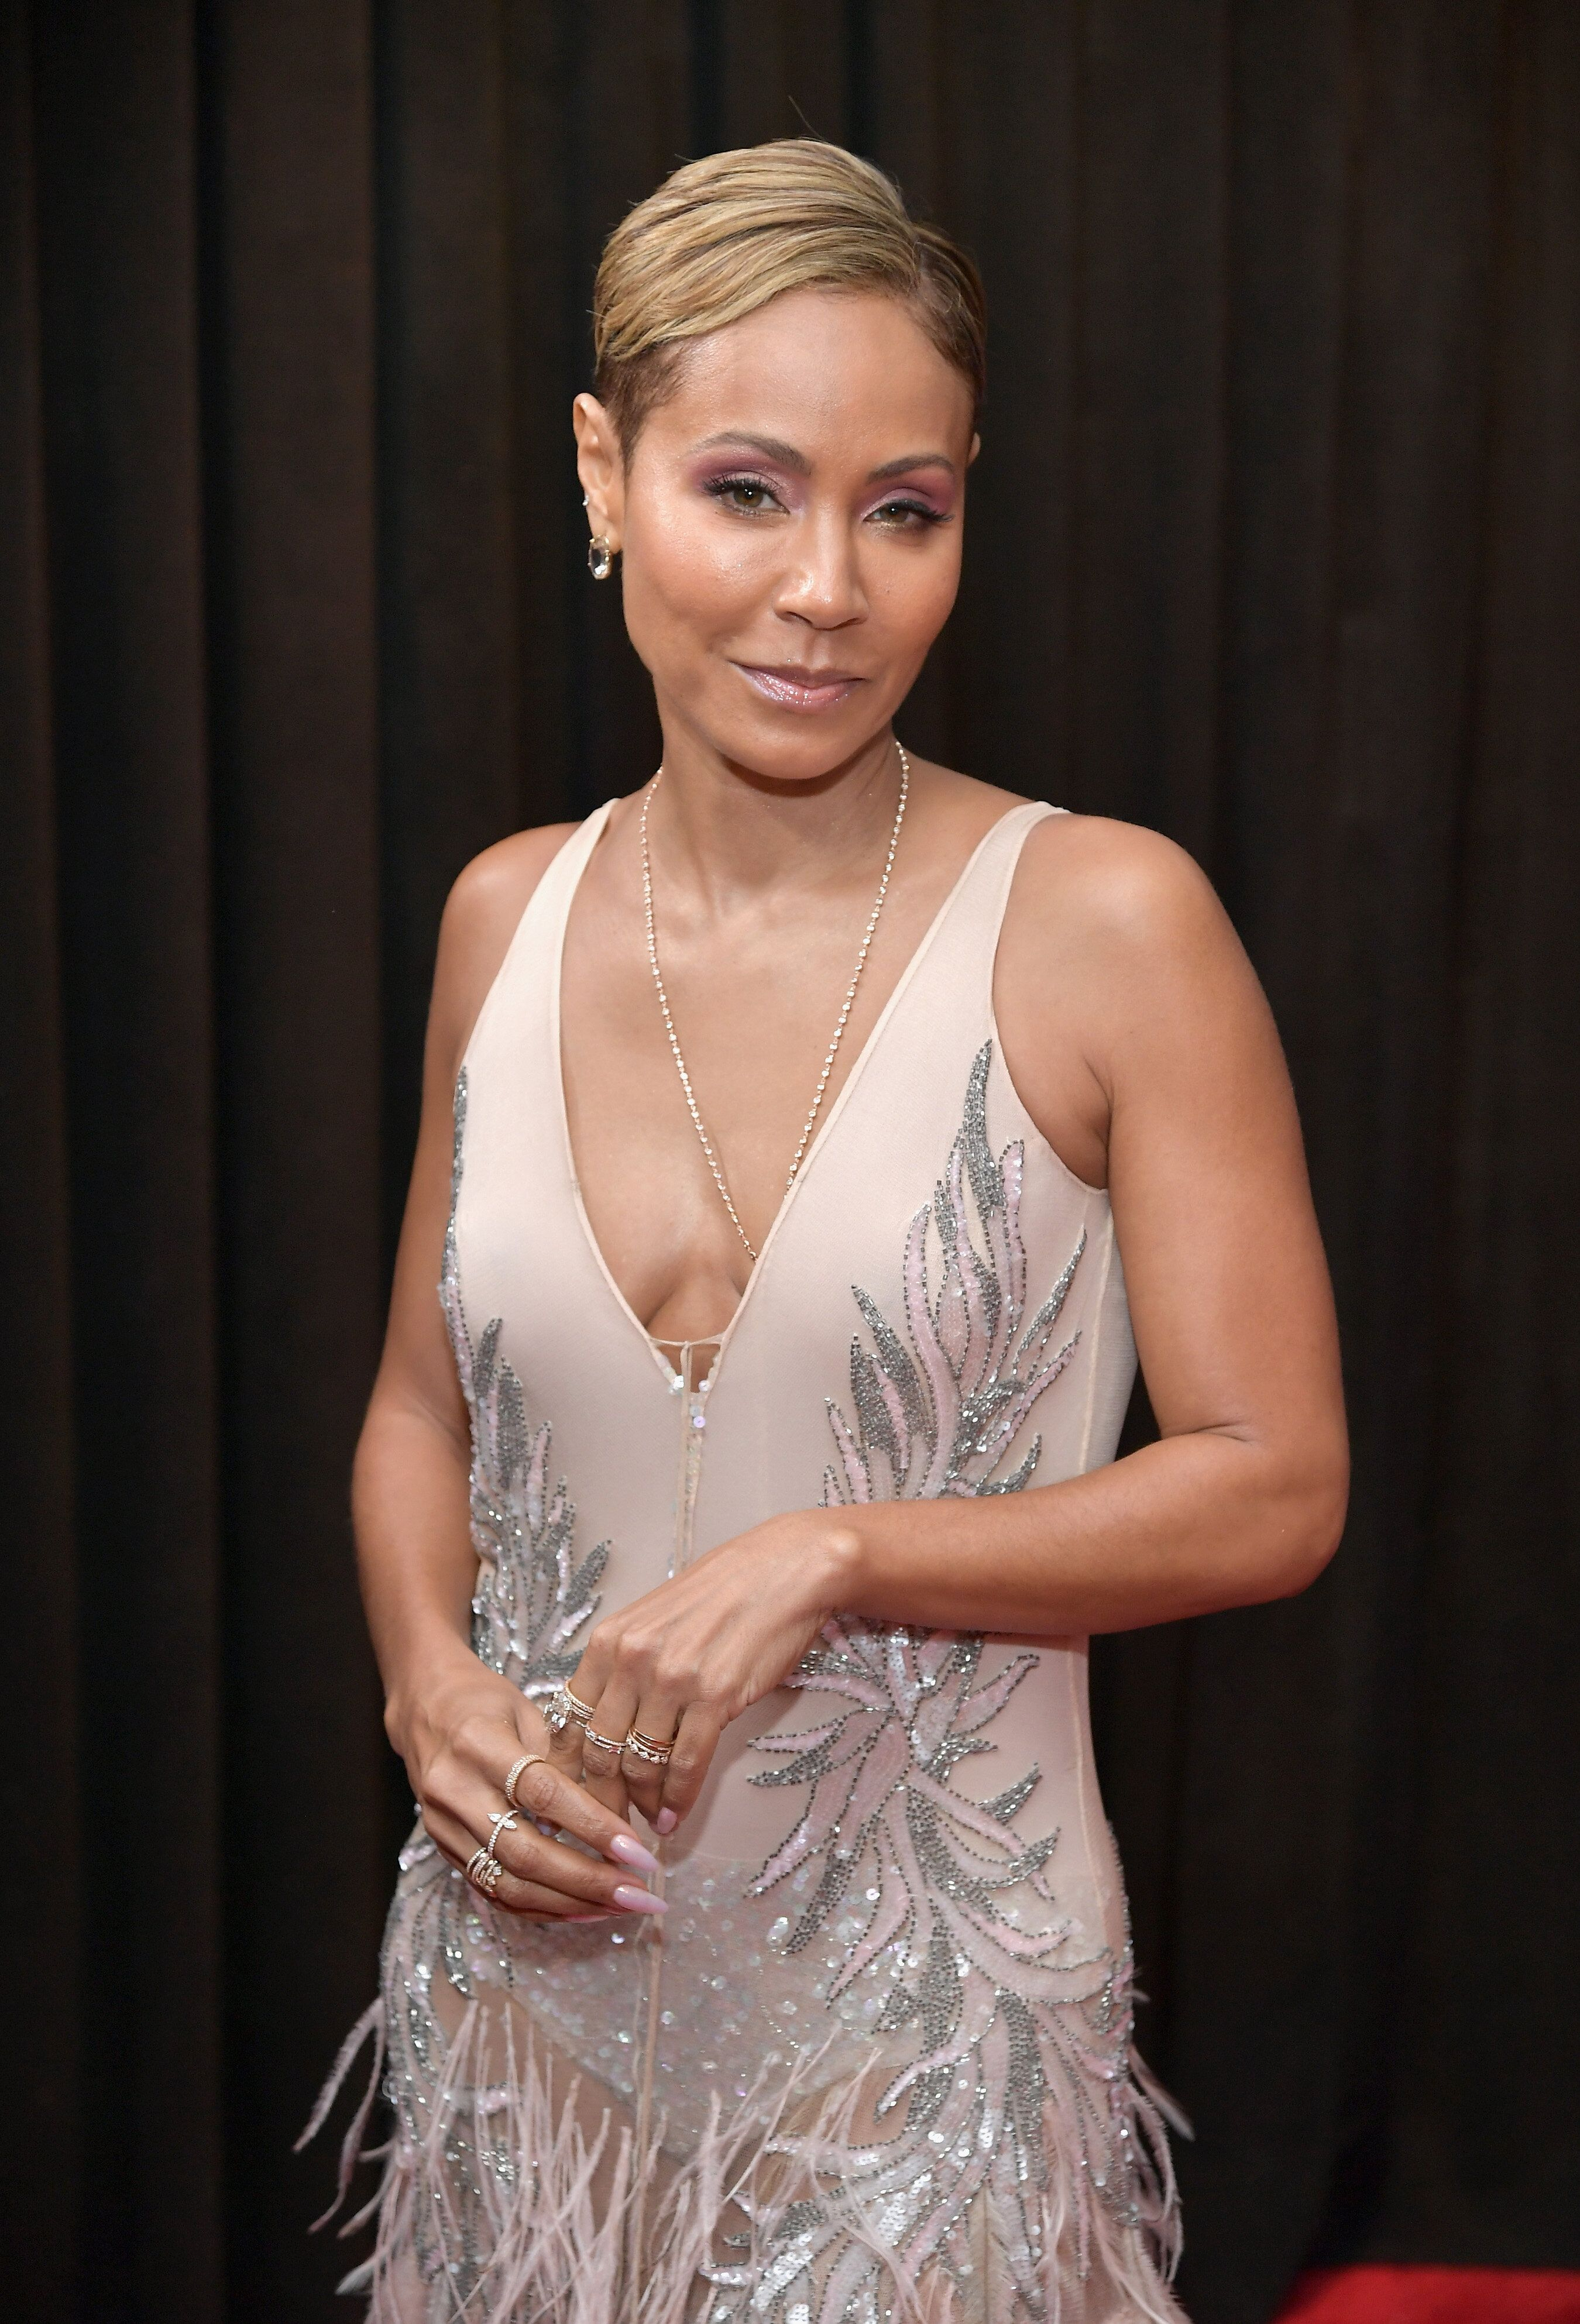 LOS ANGELES, CA - FEBRUARY 10:  Jada Pinkett Smith attends the 61st Annual GRAMMY Awards at Staples Center on February 10, 2019 in Los Angeles, California.  (Photo by Neilson Barnard/Getty Images for The Recording Academy)